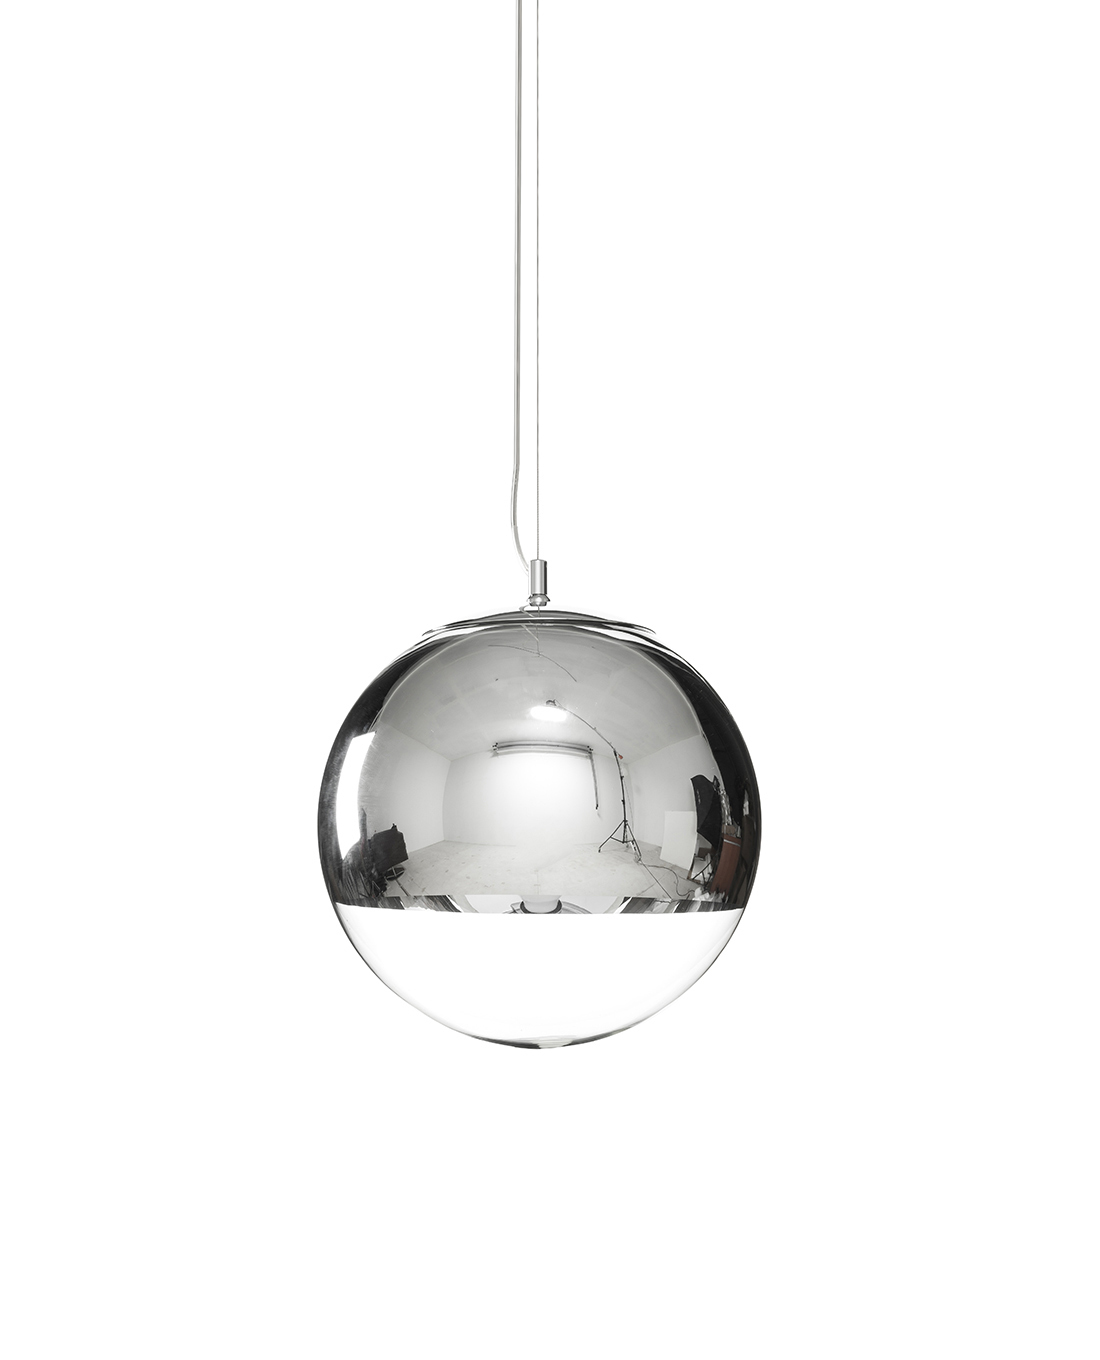 replica tom dixon mirror ball pendant lamp d30 buy in online shop price order online. Black Bedroom Furniture Sets. Home Design Ideas